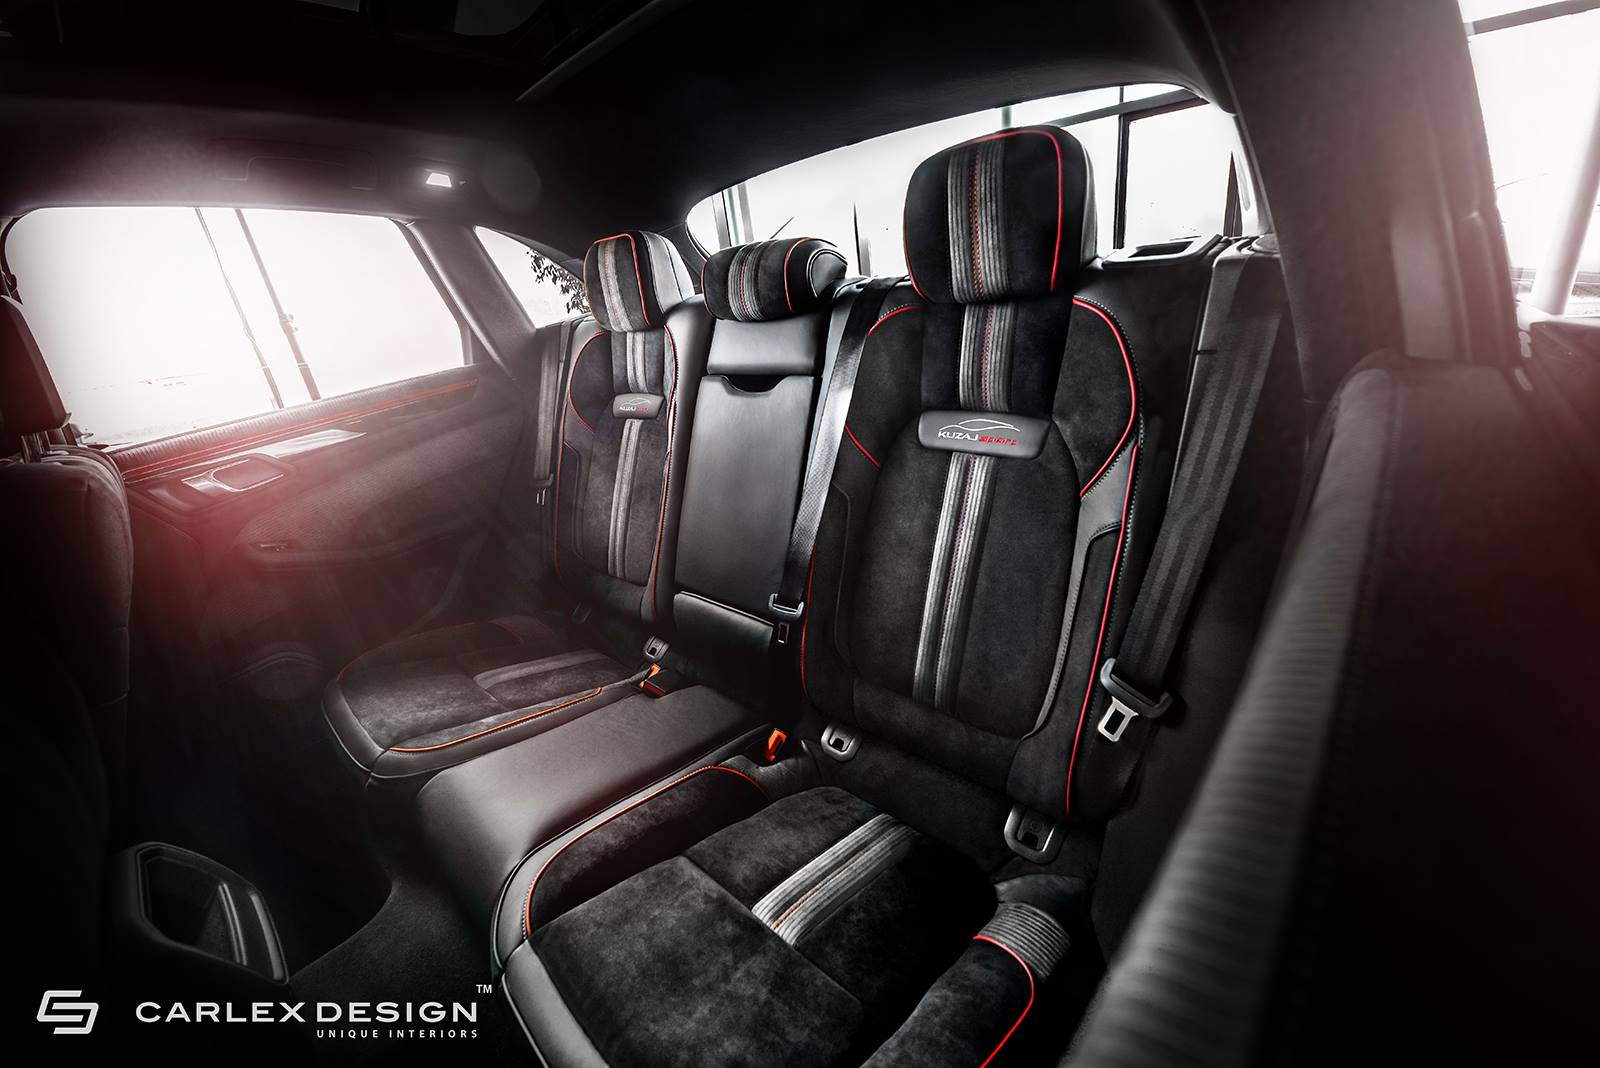 Porsche Macan Extreme Interior By Carlex Design: Rear Seats ...